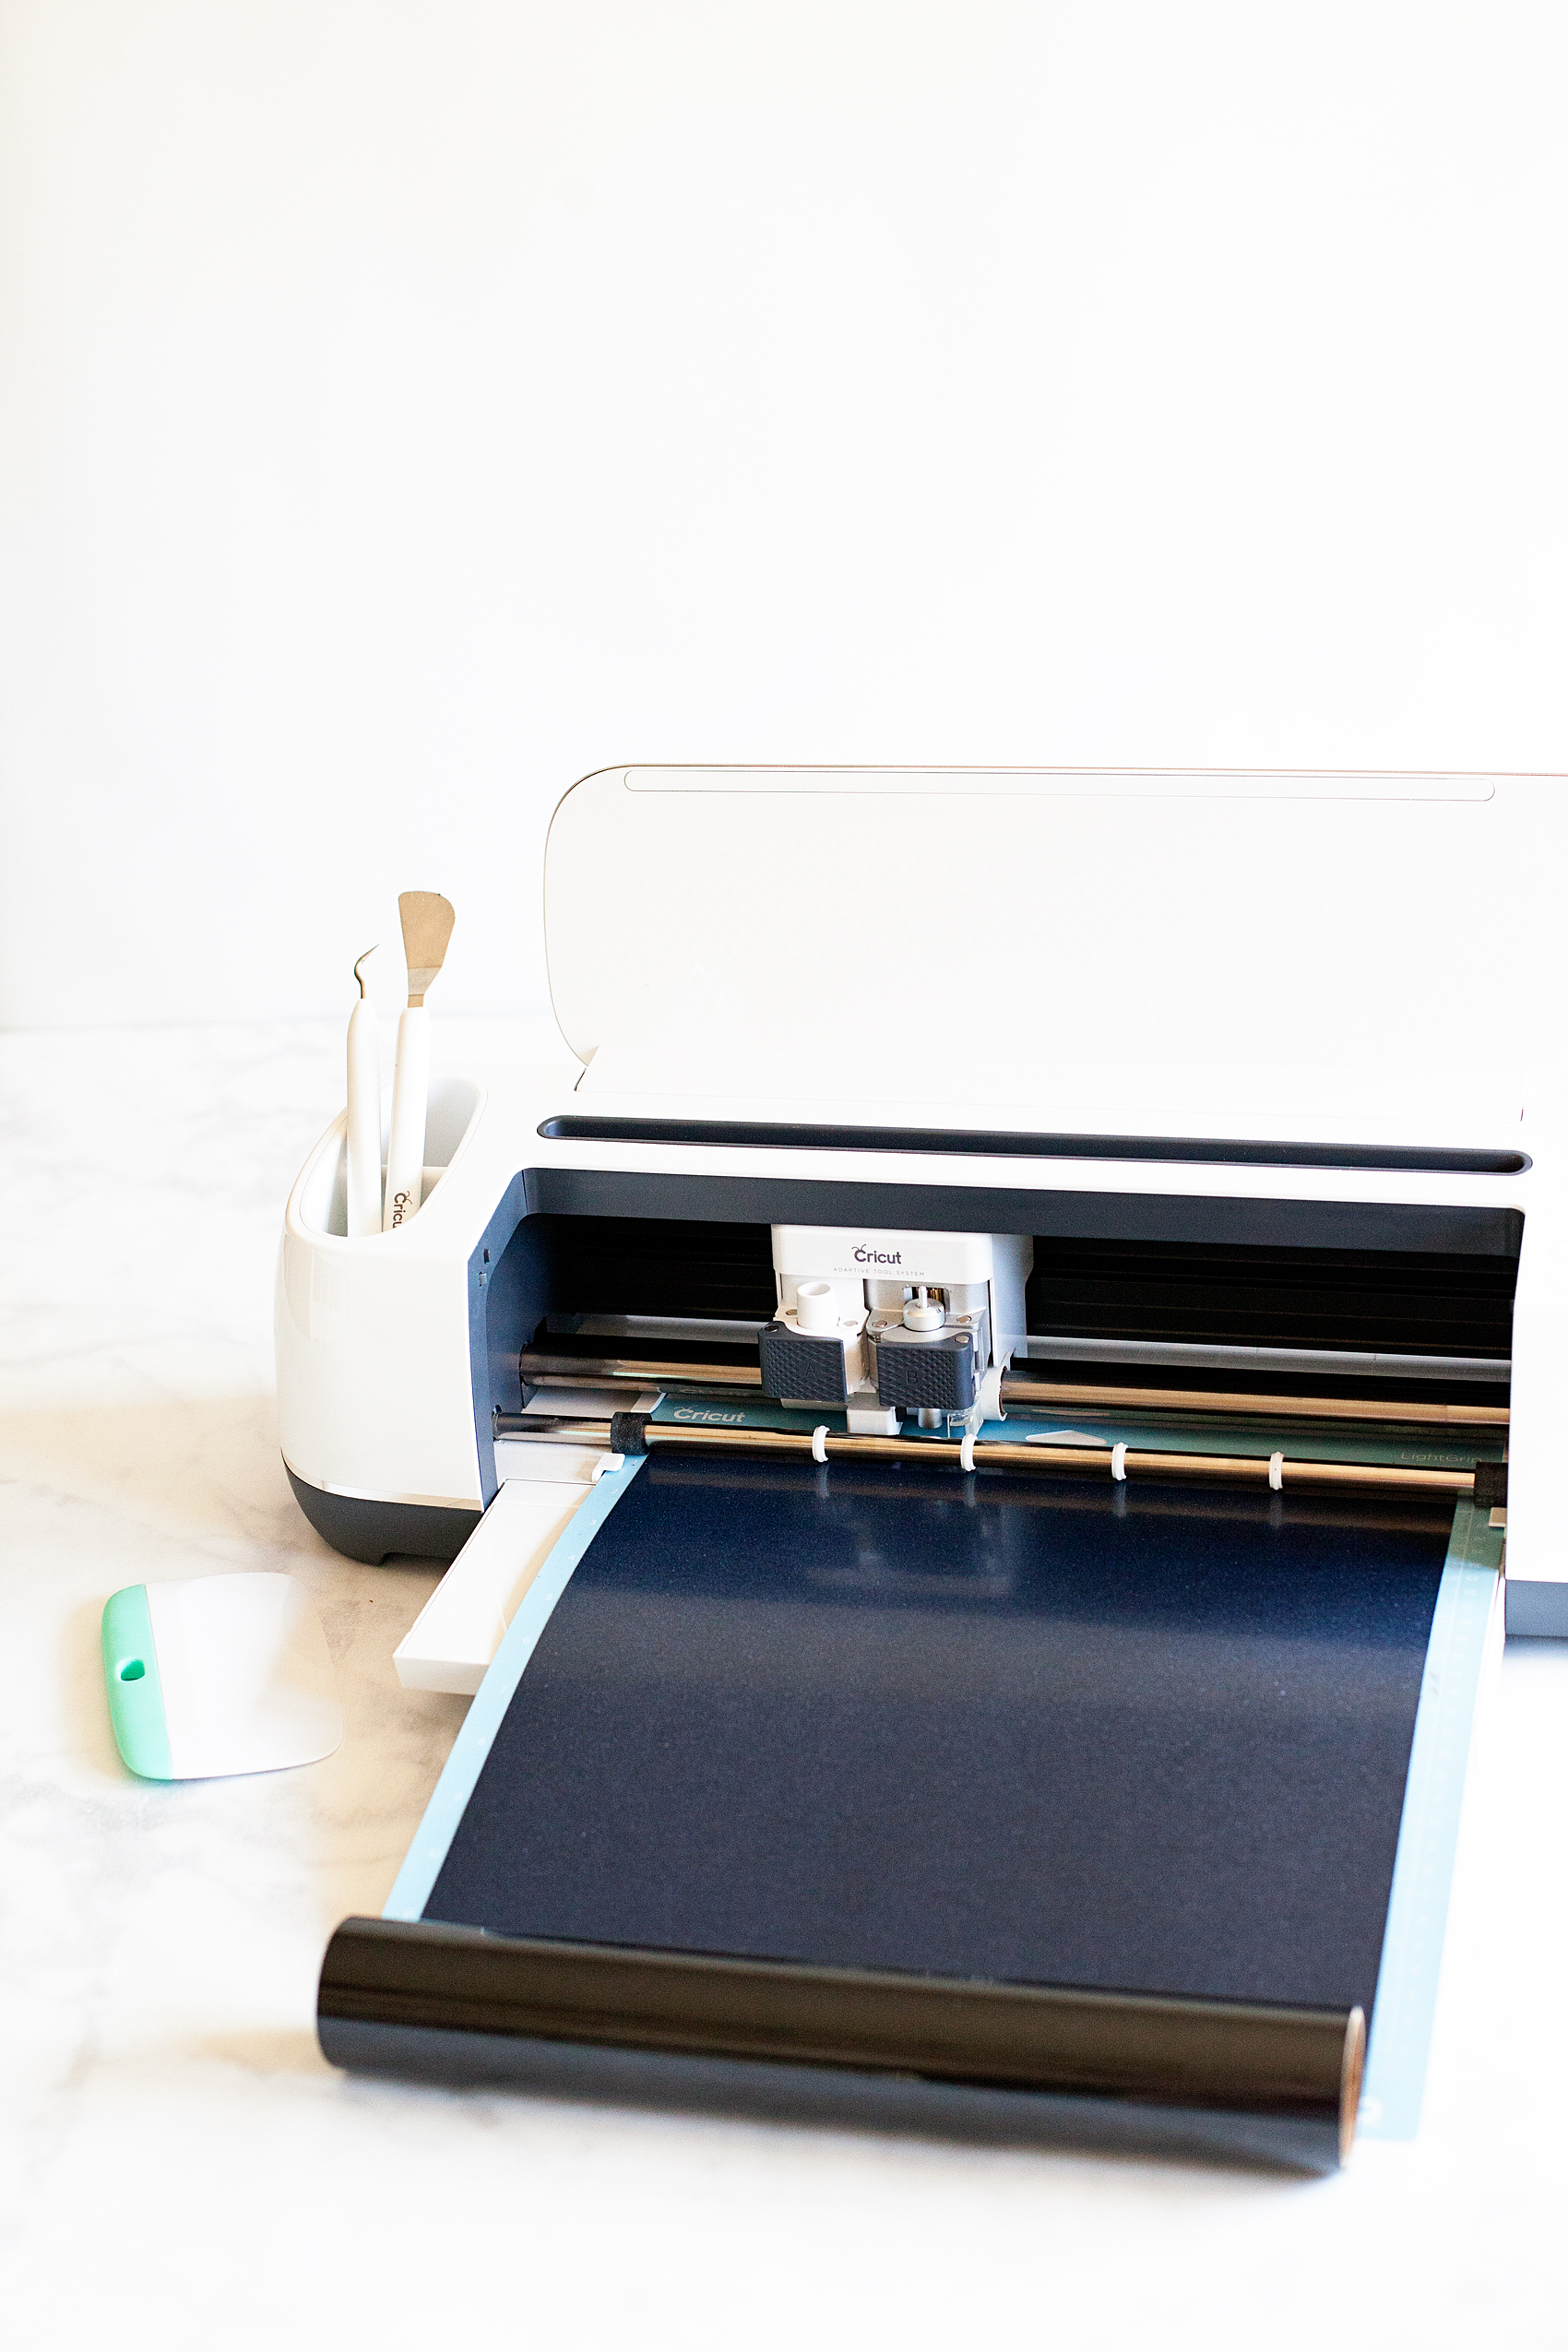 Learning how to cut iron on vinyl with the Cricut Maker via WhipperBerry